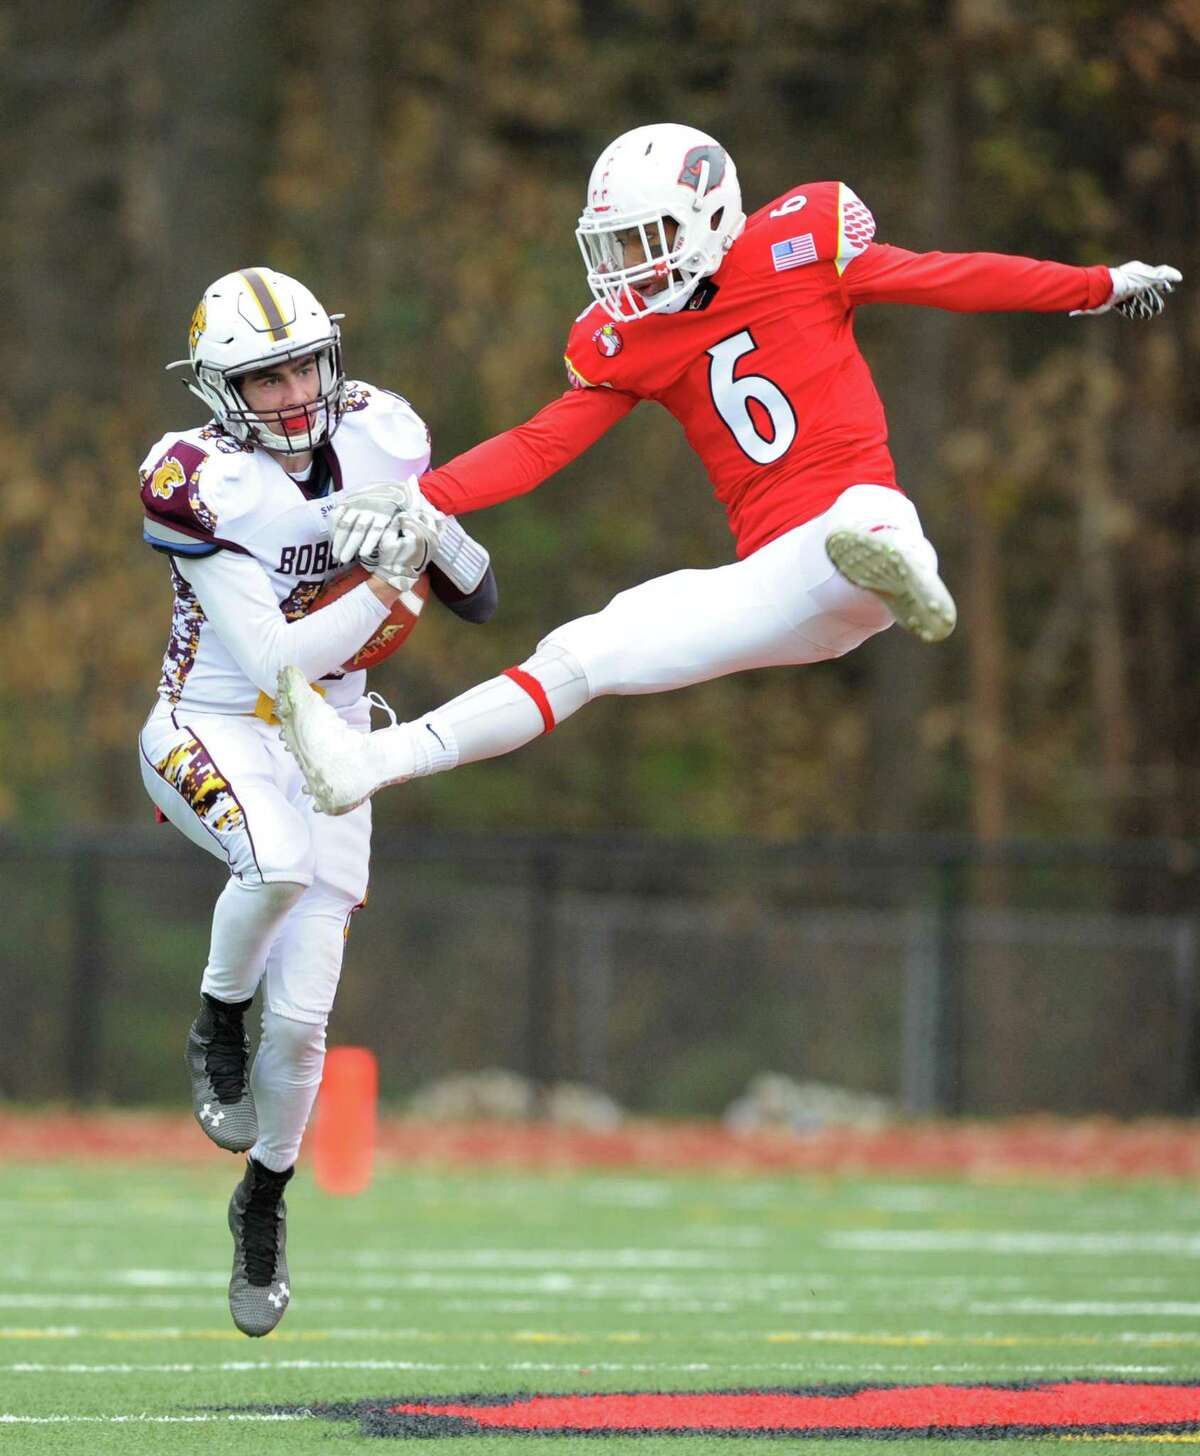 Greenwich cornerback Jeremiah Harris, right, gets airborne to break up a pass intended for South Windsor receiver Colin Ryan in No. 1 Greenwich's 36-7 win over No. 4 South Windsor in the high school football CIAC State Tournament Class LL semifinal game at Greenwich High School in Greenwich, Conn. Sunday, Dec. 3, 2017.